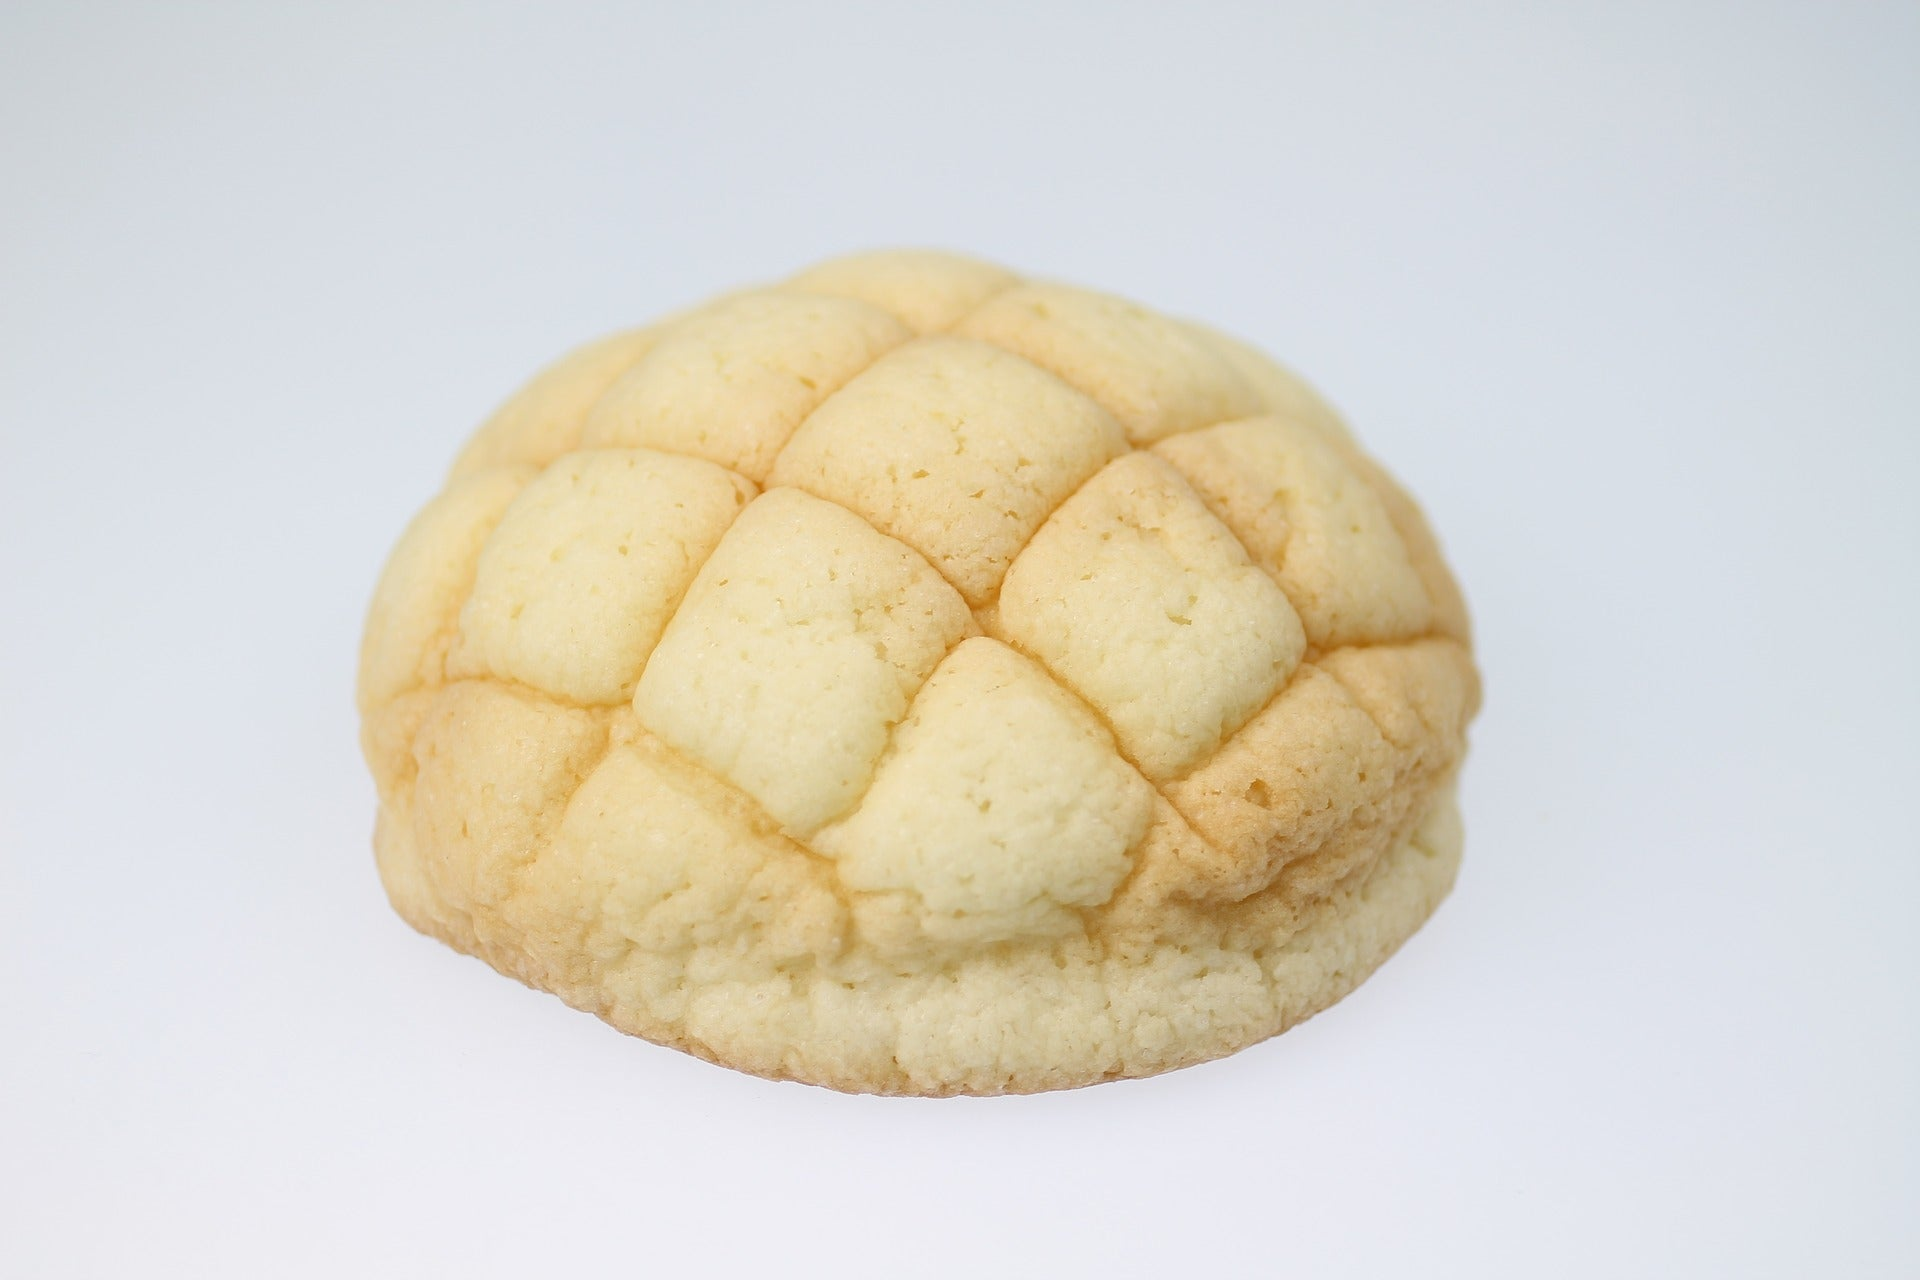 Japan's Most Delicious Bread Is Melon Pan